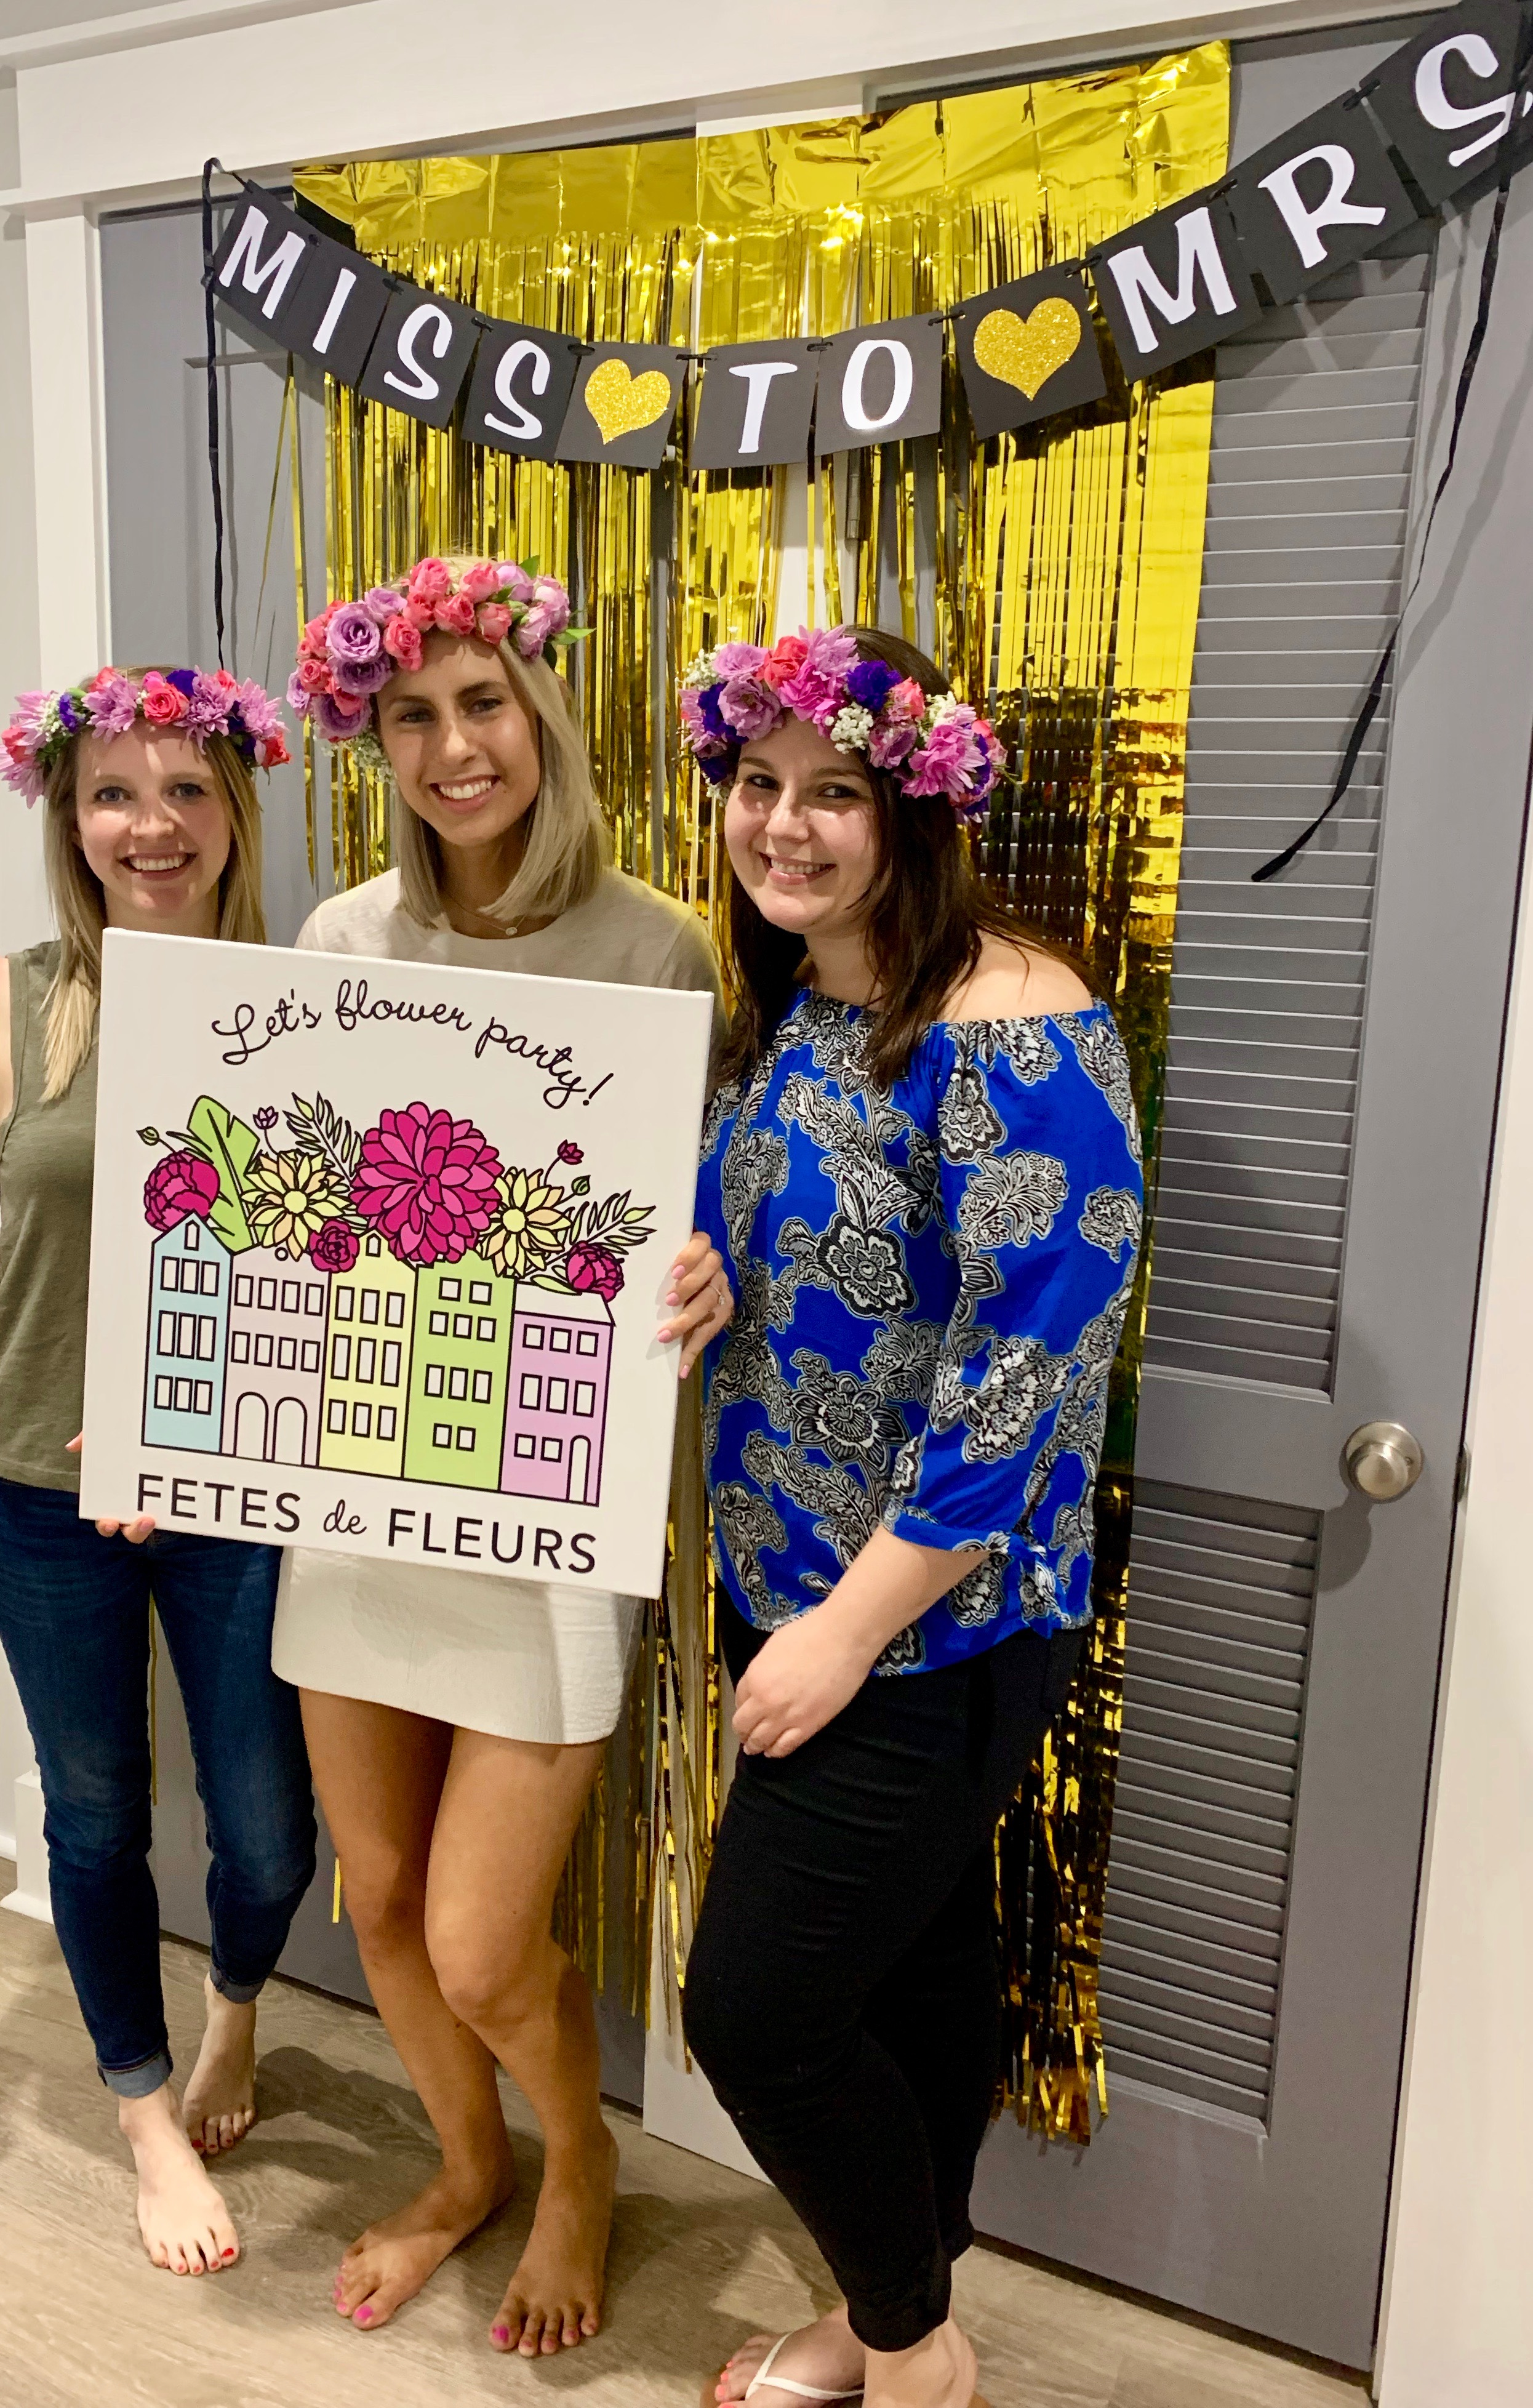 bachelorette party ideas for a miss to mrs theme